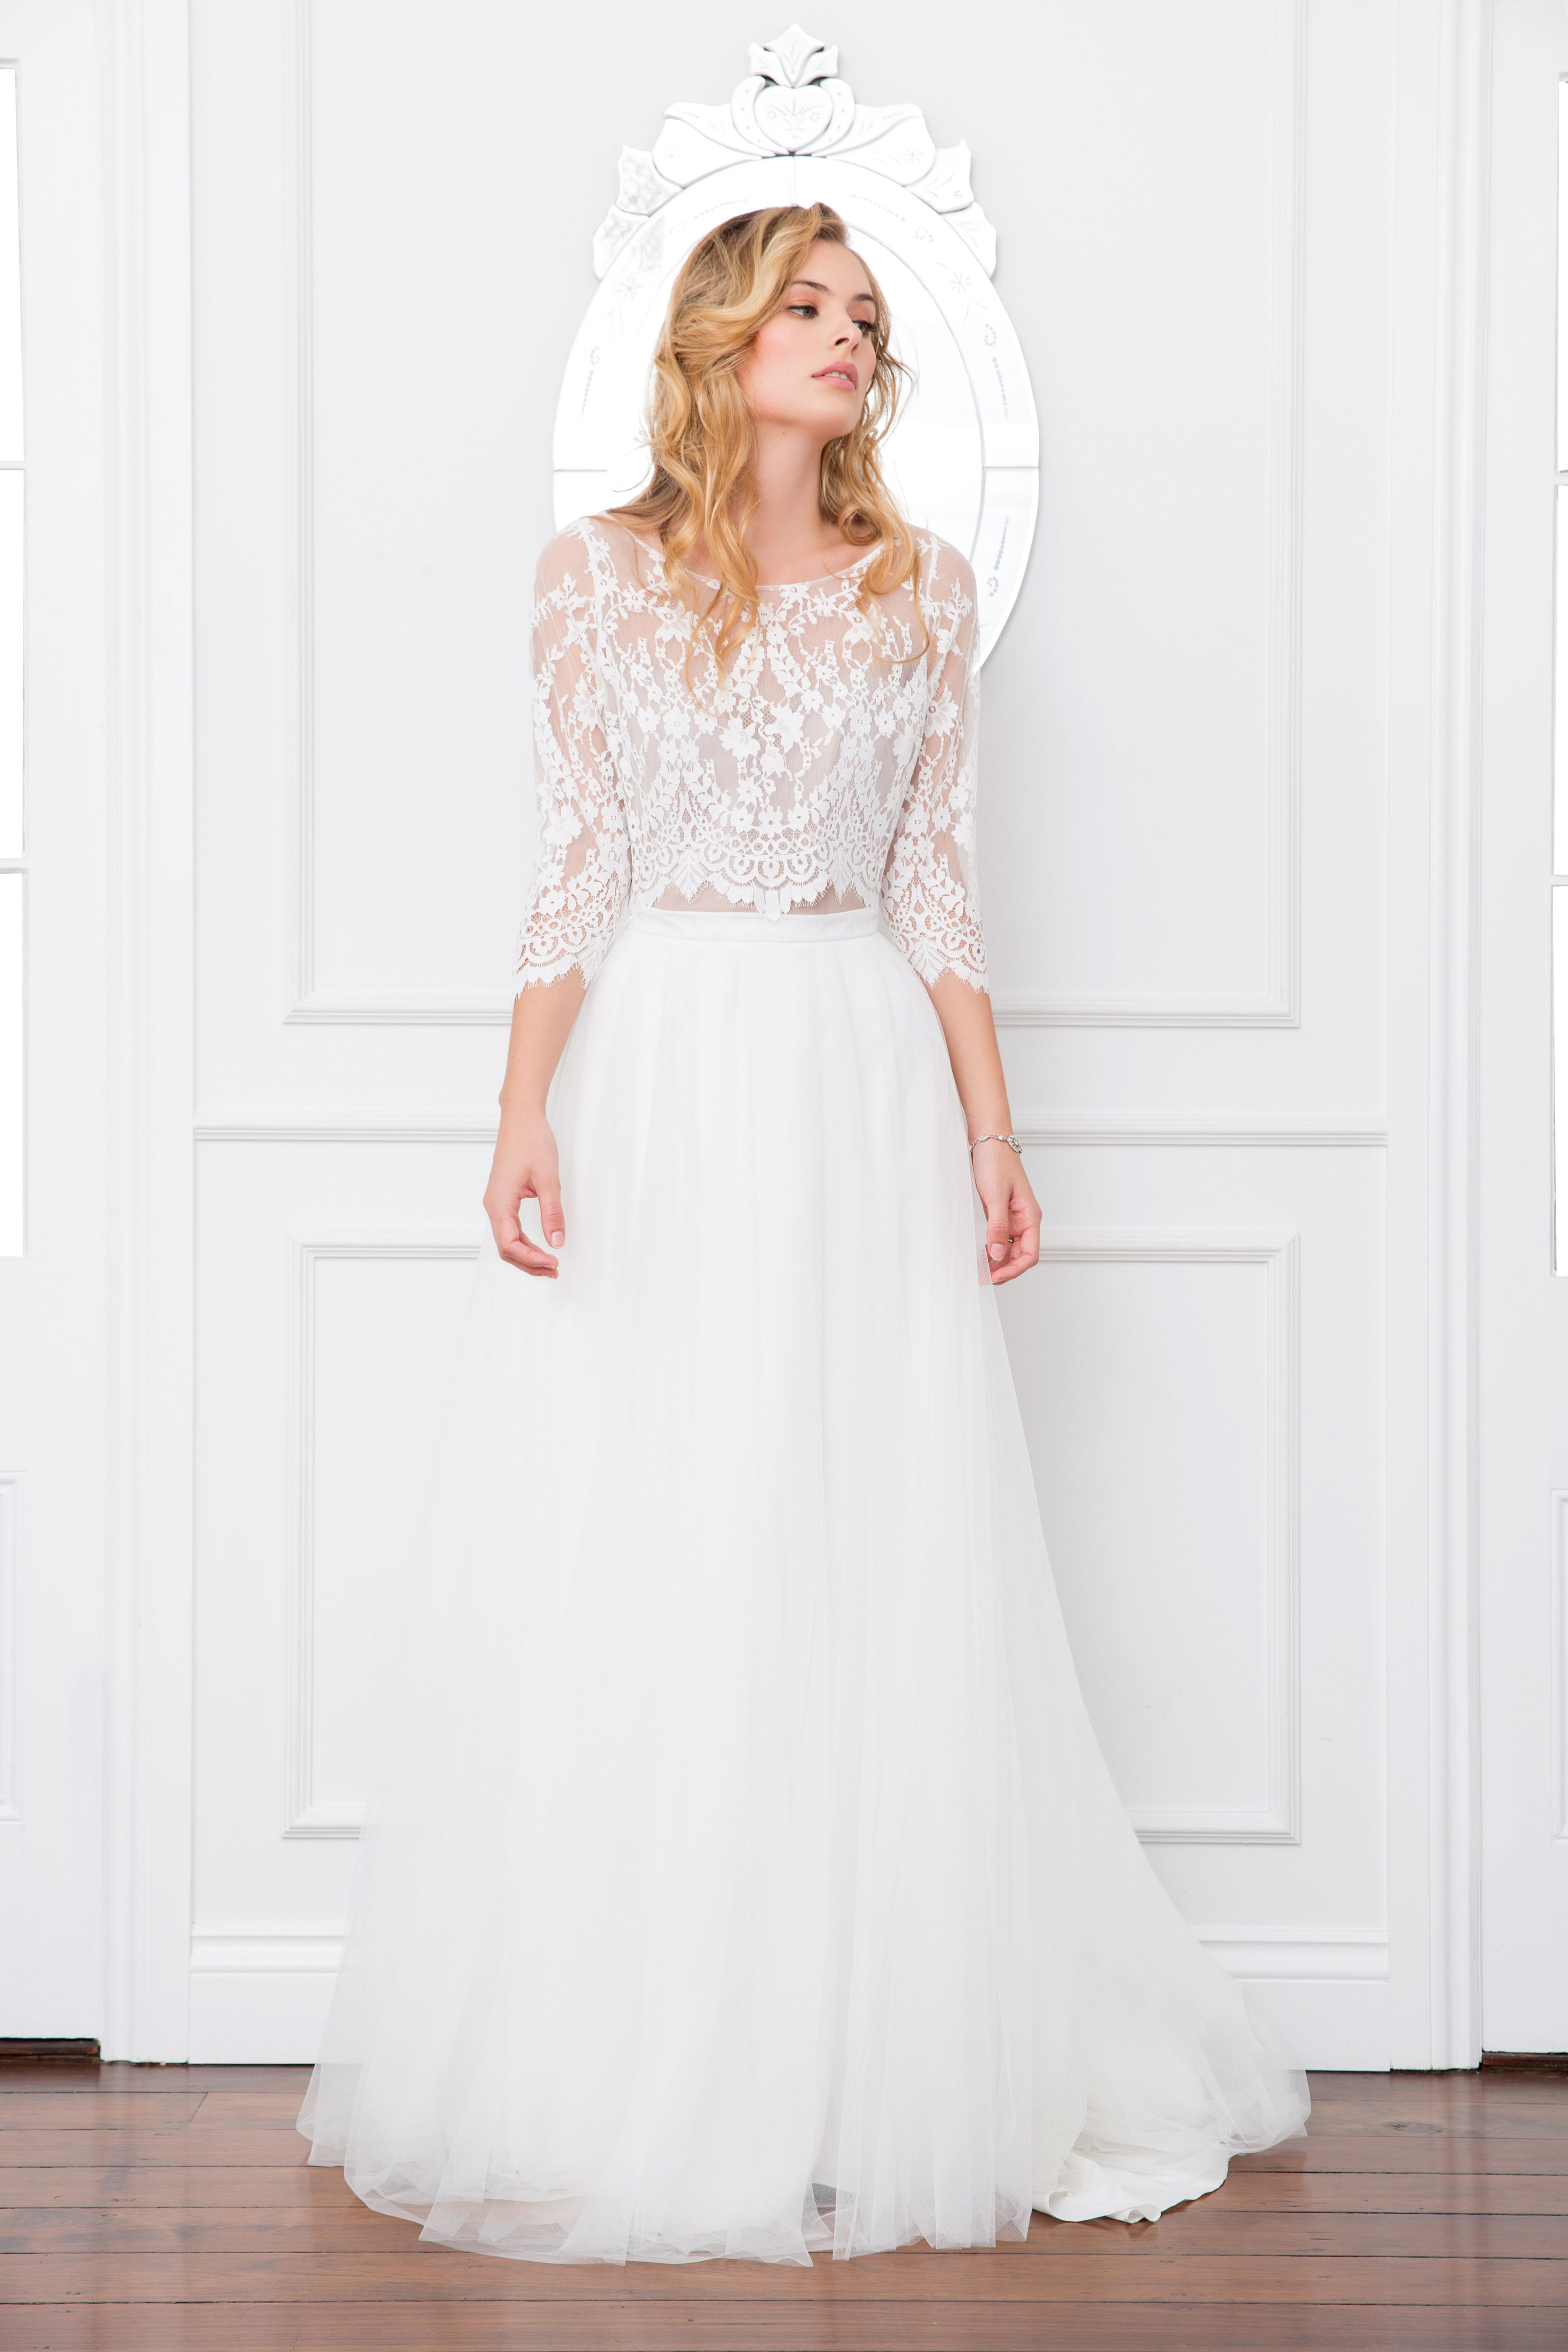 V Neck Sleeveless Lace Top Wedding Dress With Champagne Lining Lace Top Wedding Lace Top Wedding Dress Wedding Dresses Lace